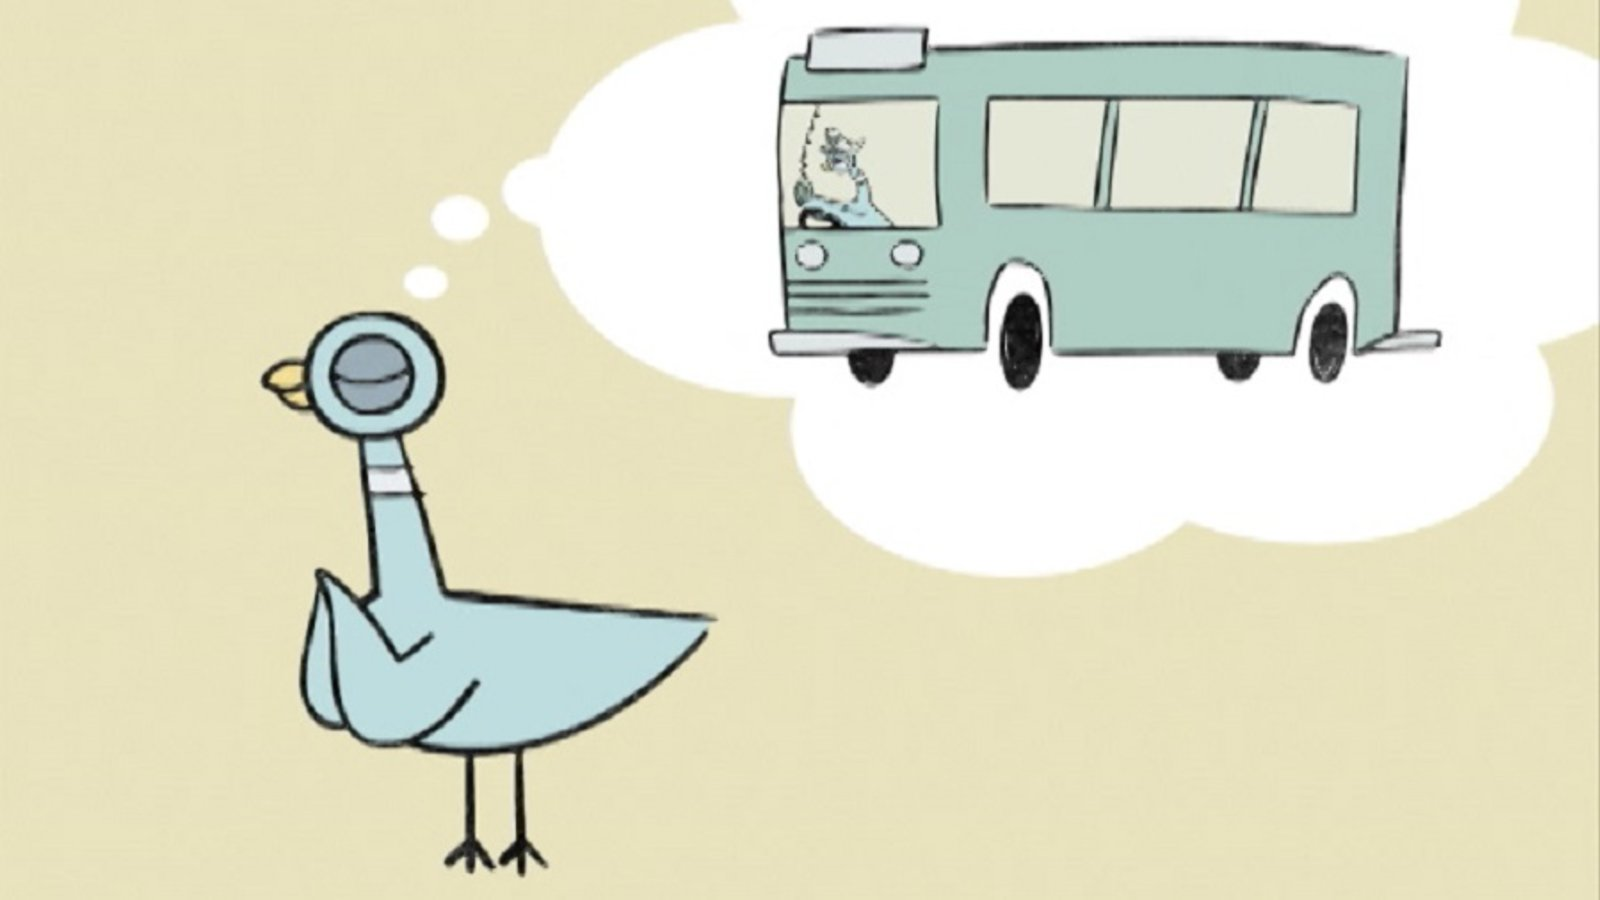 Don't Let The Pigeon Drive The Bus.